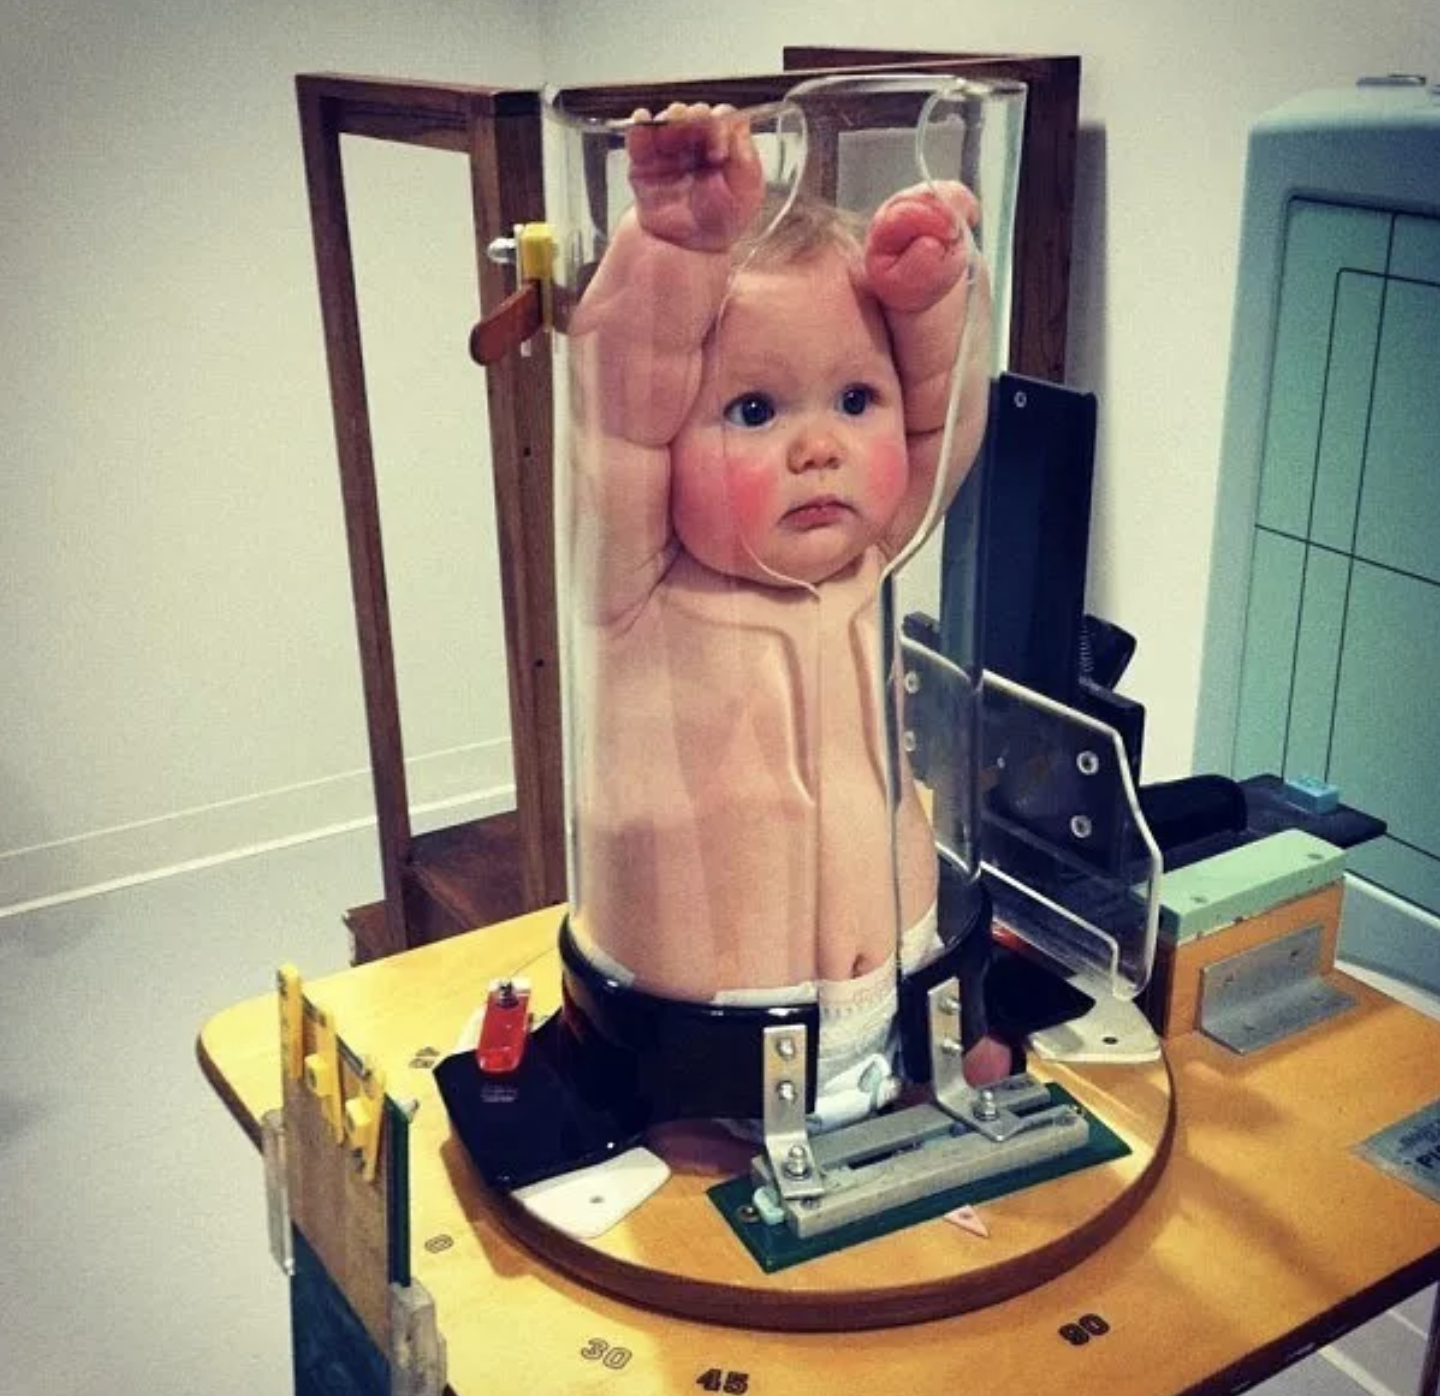 Baby X-Rays Look Extremely Uncomfortable, So Of Course Twitter Made It Funny